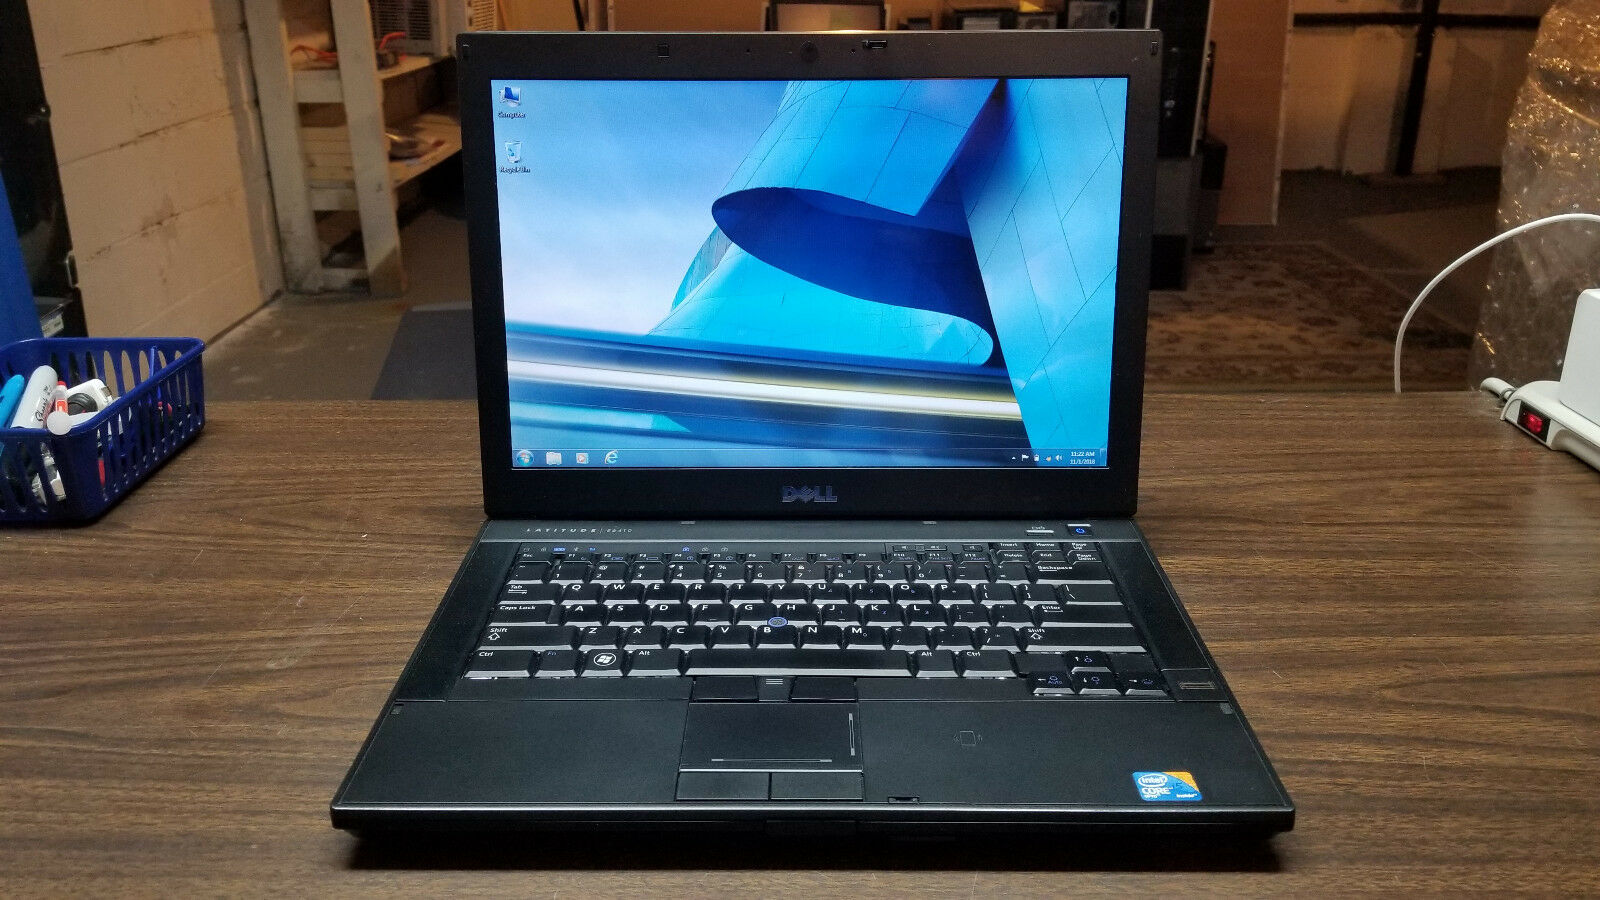 "Laptop Windows - Dell Latitude E6410 14.1"" Laptop - Intel Core i5, 250GB HDD, 4GB, Windows 7 Pro"